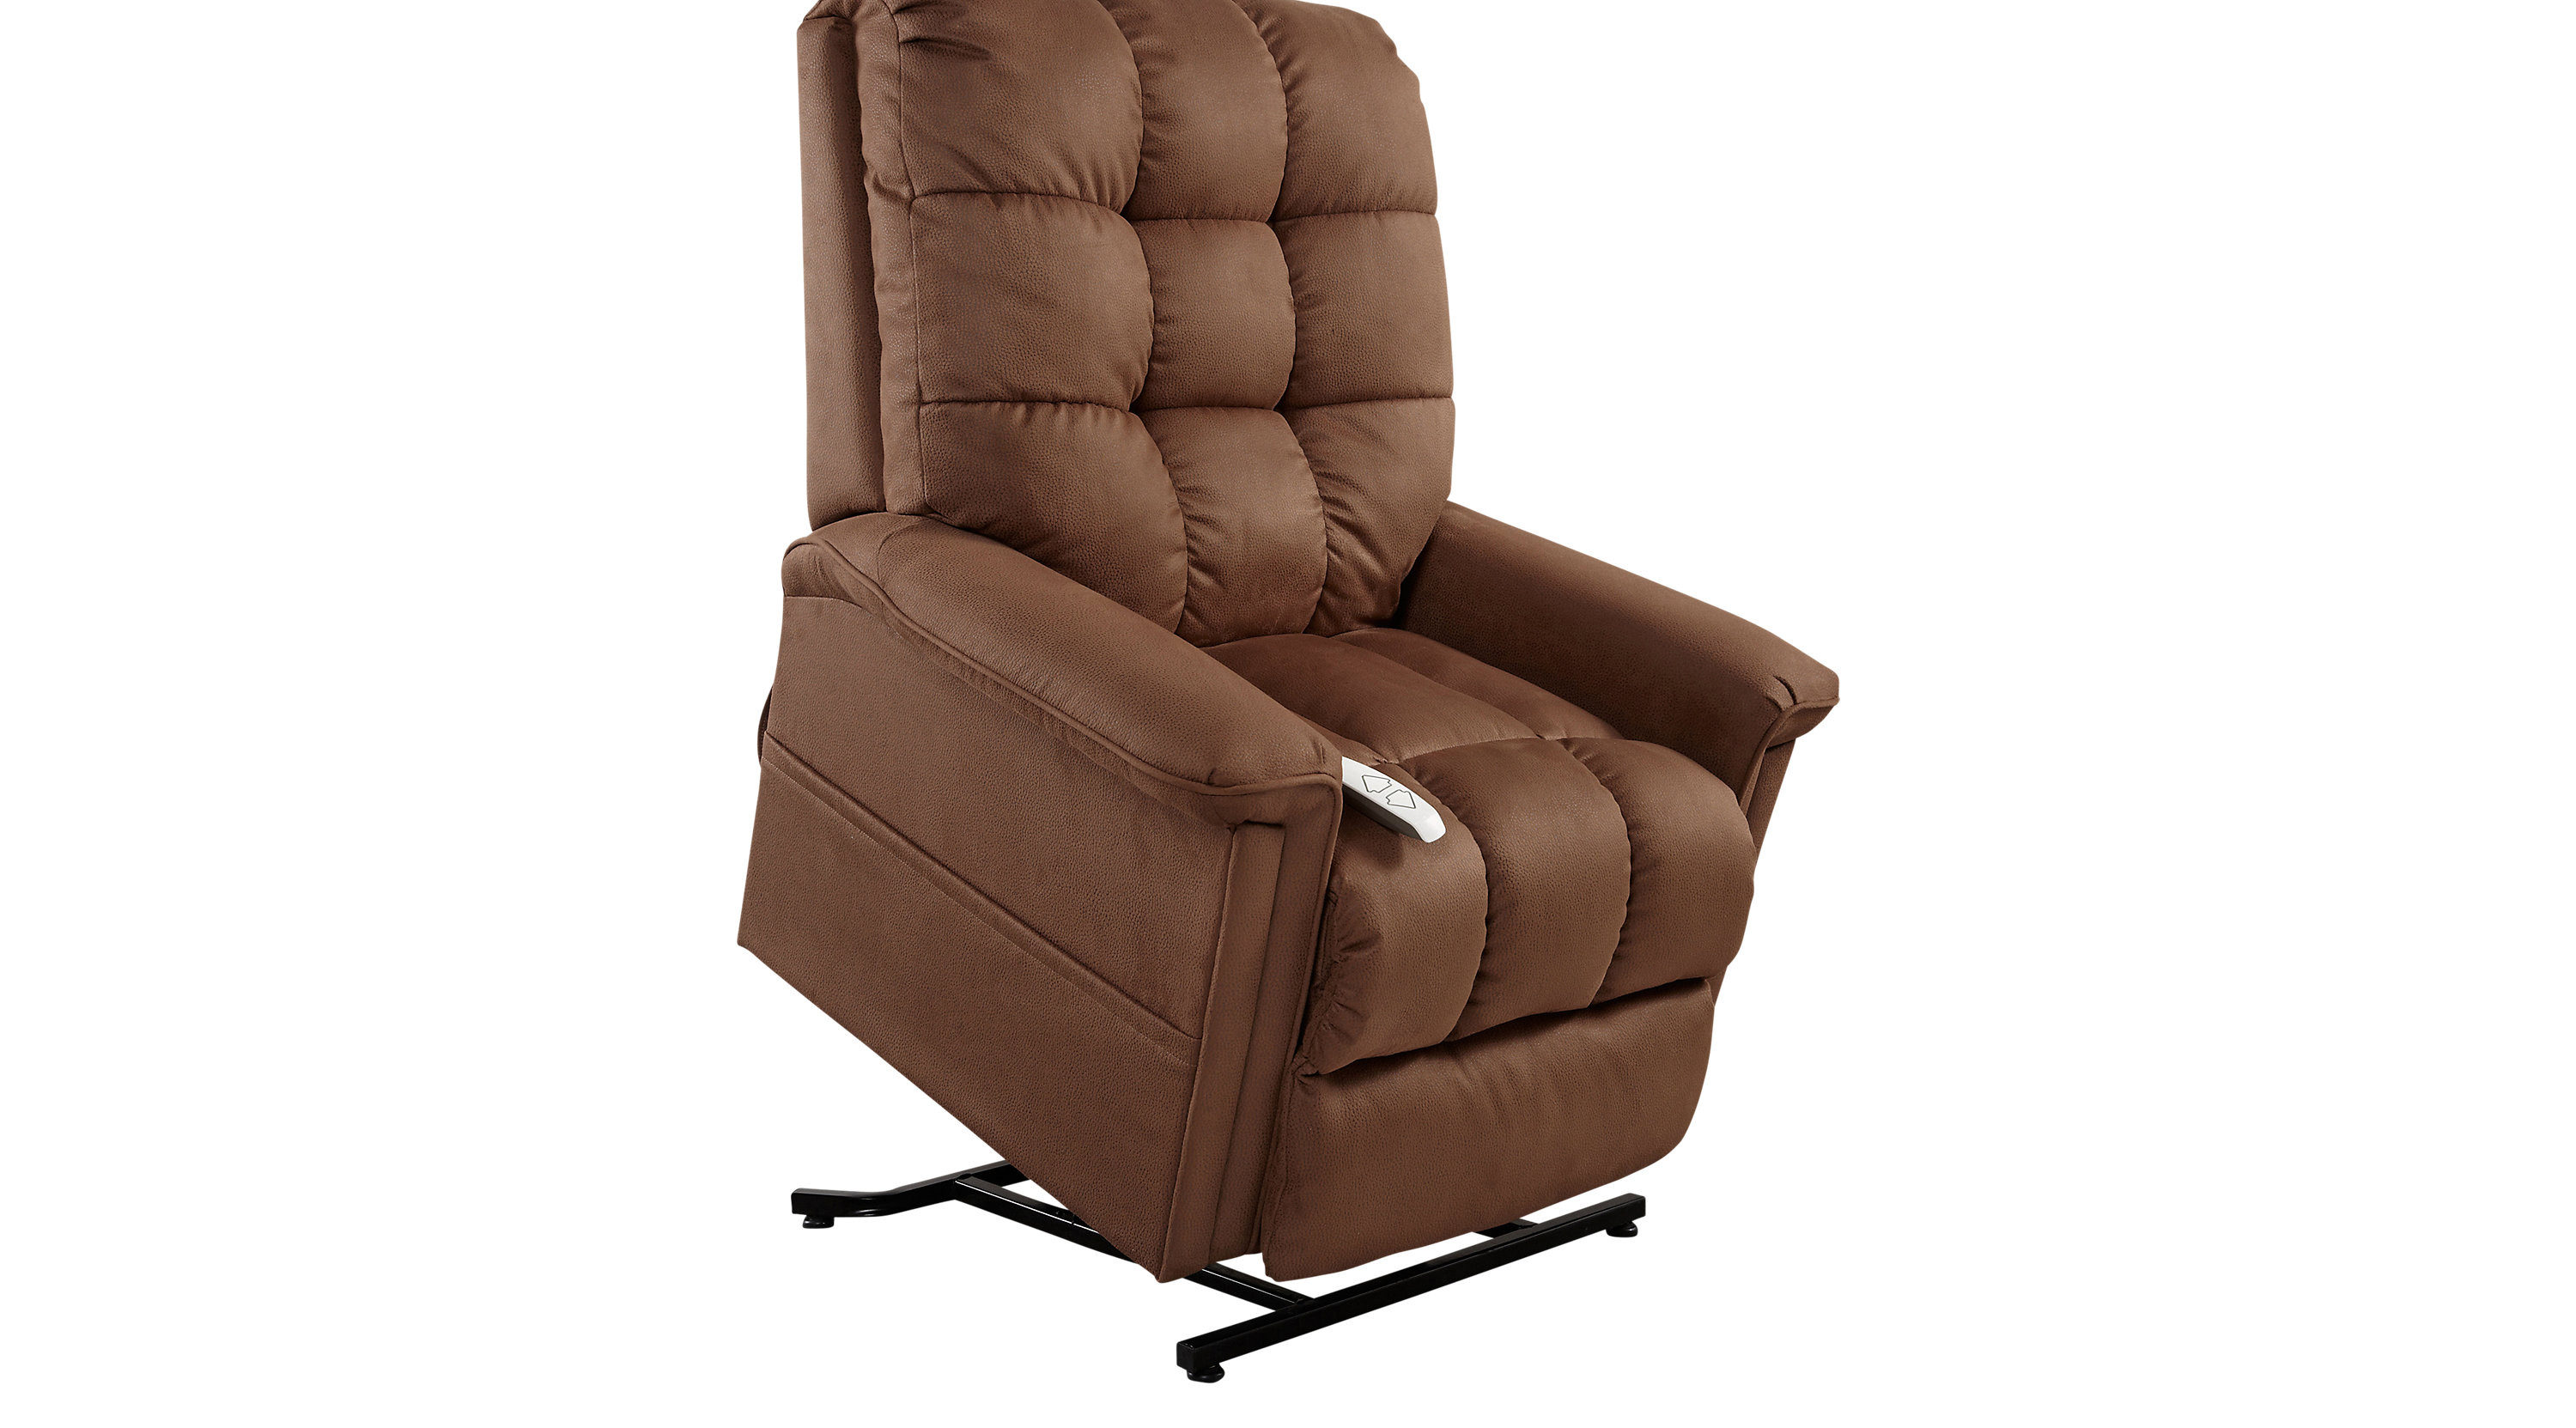 on motorized recliner recliners detail lift buy chairs product sofa alibaba hx mechanism part com